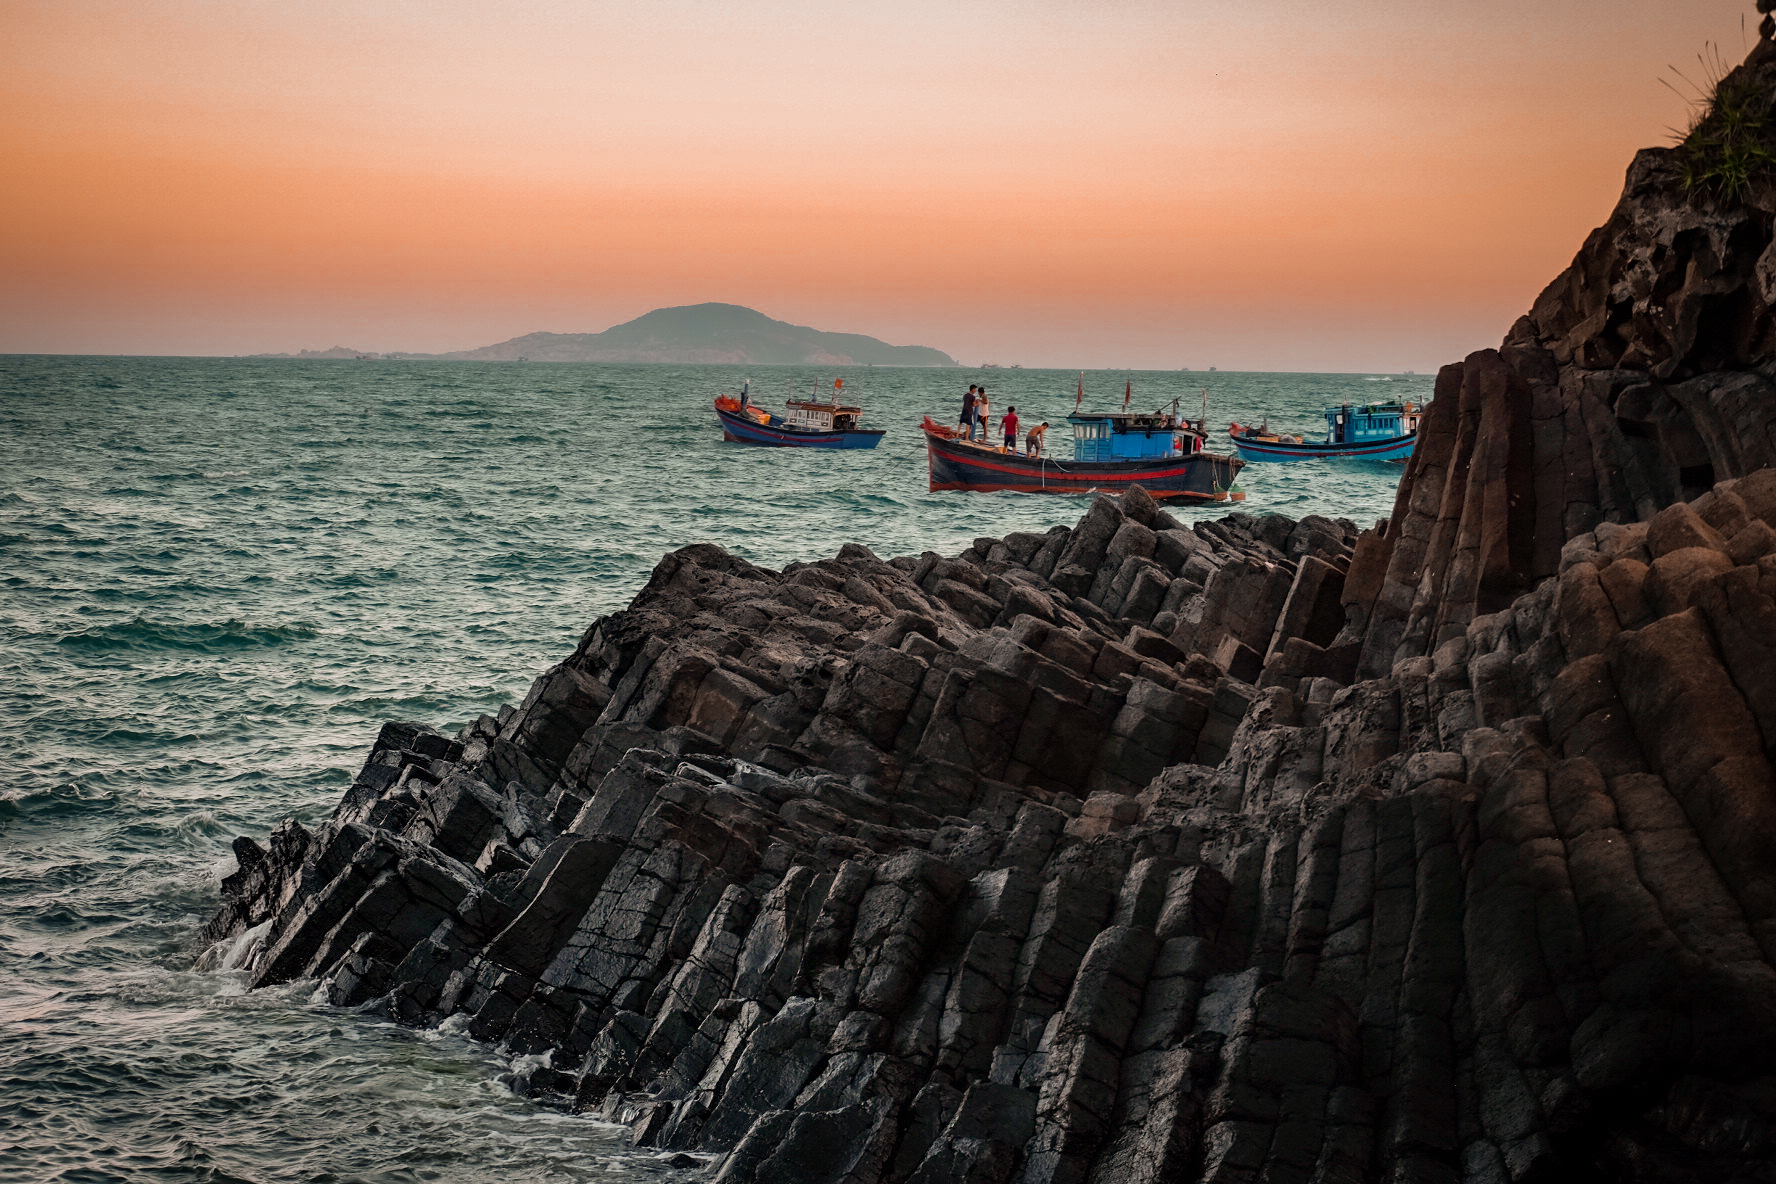 PHU YEN - THE BELOVED LAND (4D3N) SPECIAL 5* HOTEL: 4.888.000VND/Pax